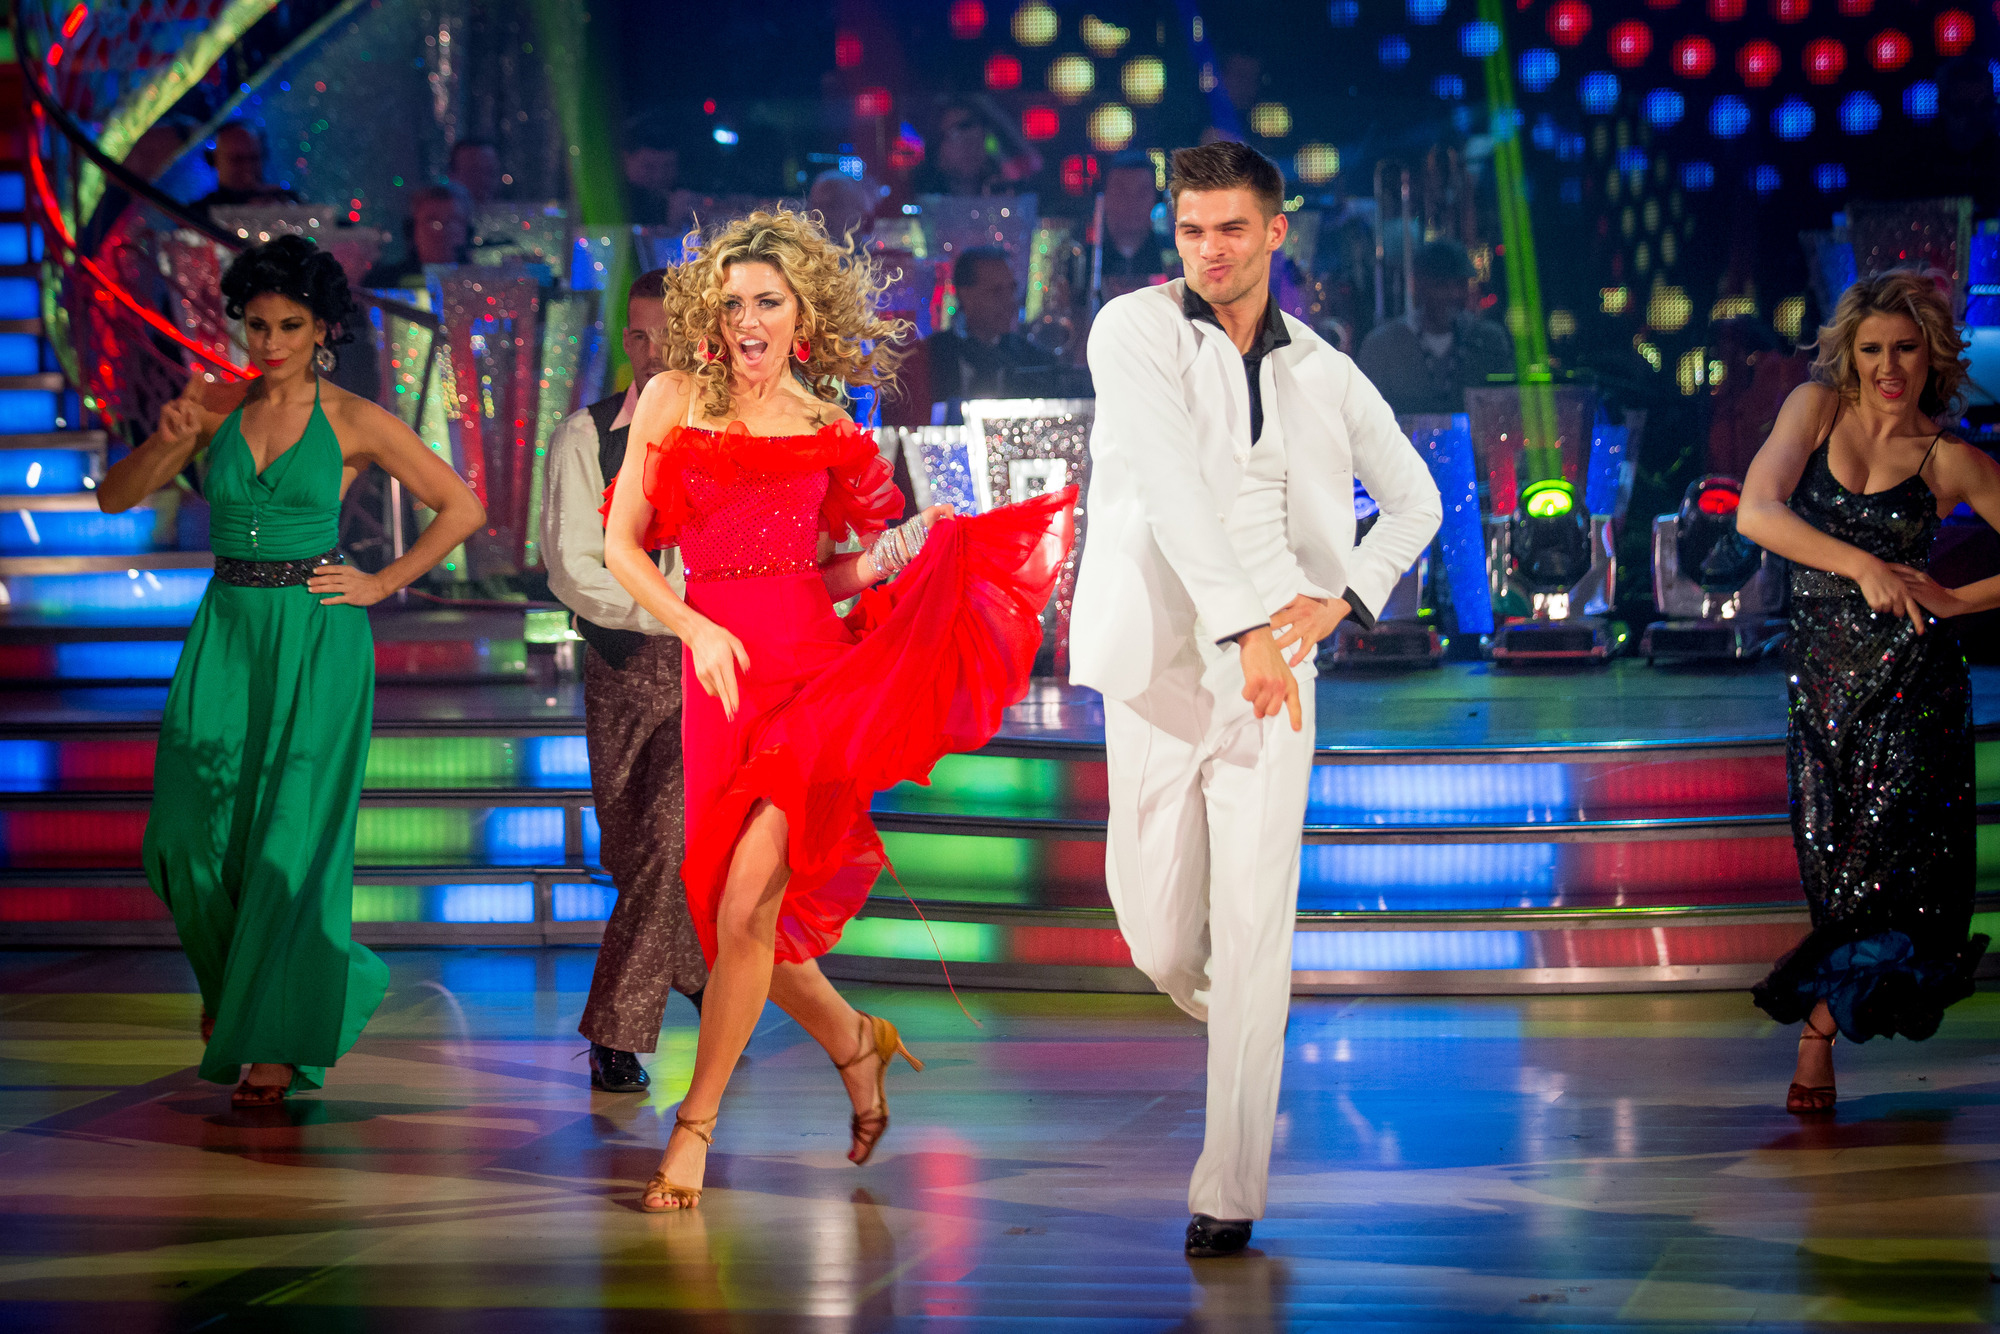 Strictly Come Dancing champ Abbey Clancy calls for a winners' version of the show